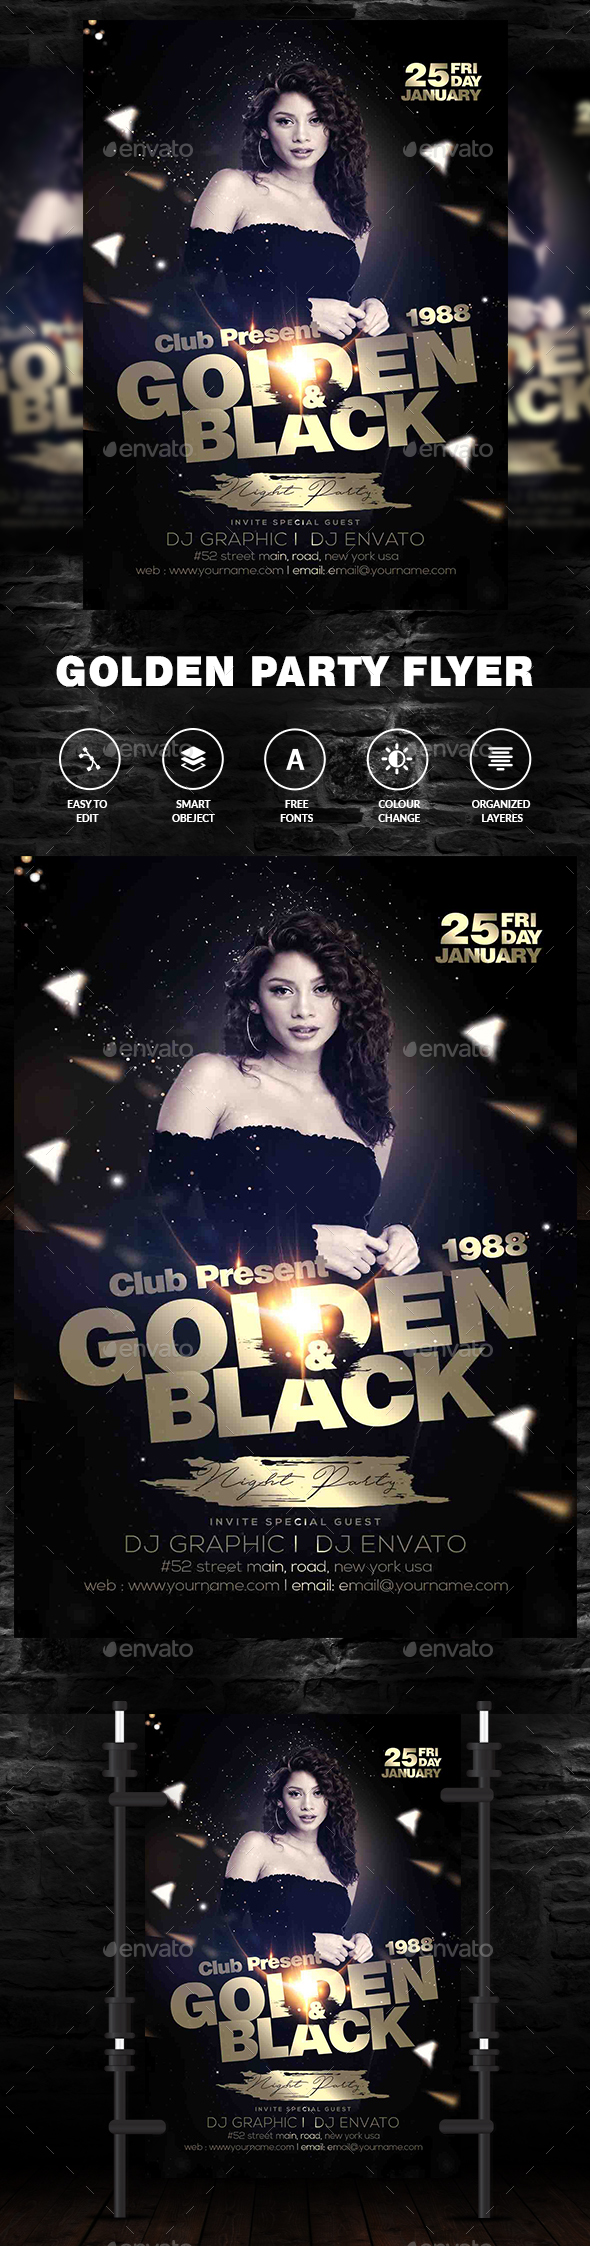 Golden Black Party Flyer - Flyers Print Templates